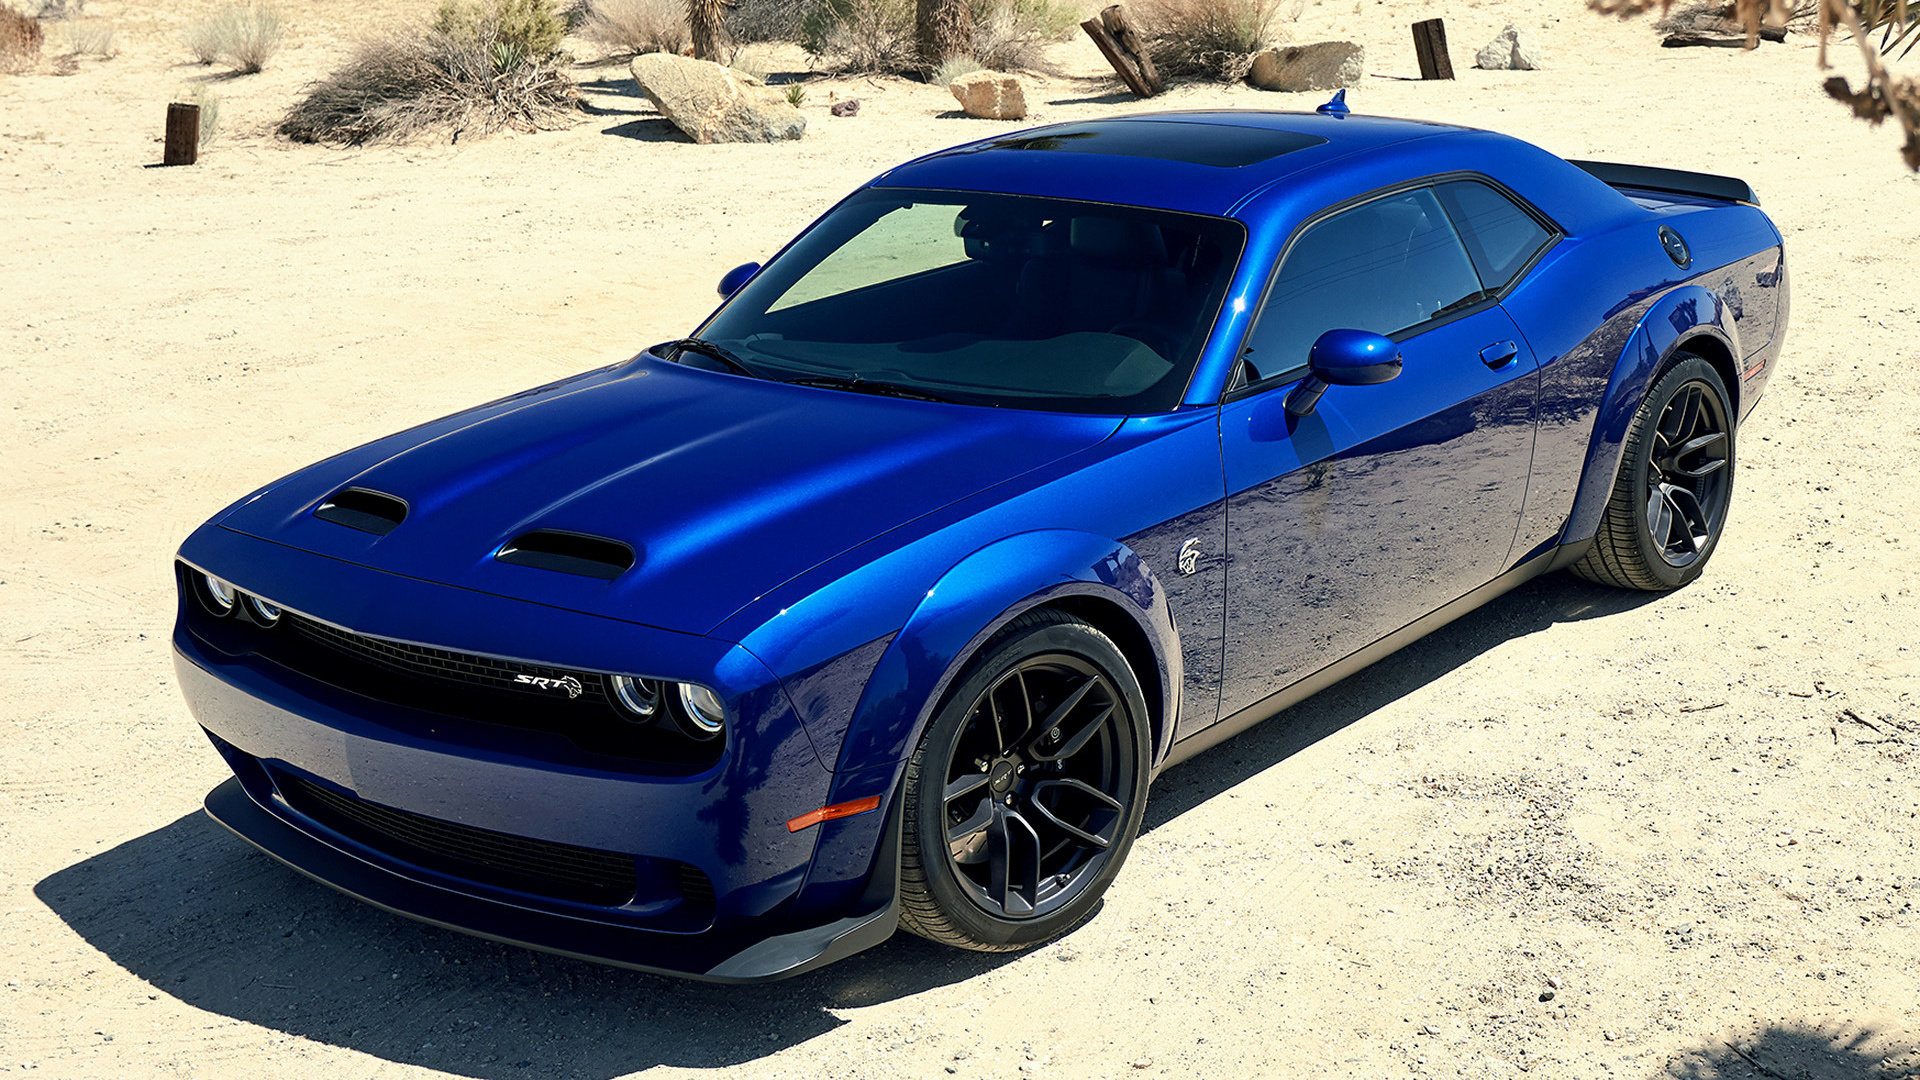 2019 Dodge Challenger Srt Hellcat Widebody Wallpapers And Hd Images Car Pixel